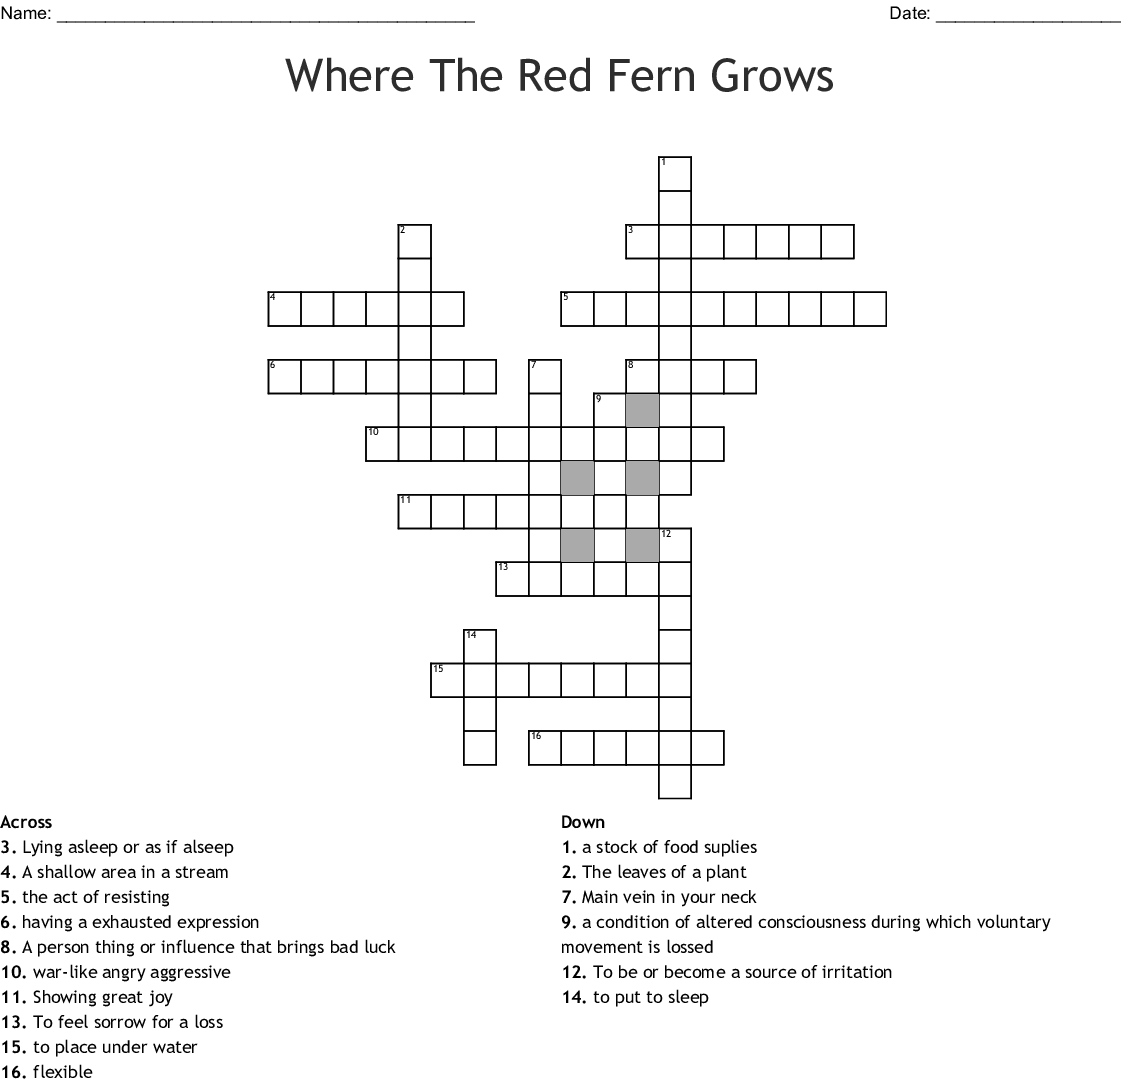 Where The Red Fern Grows Crossword